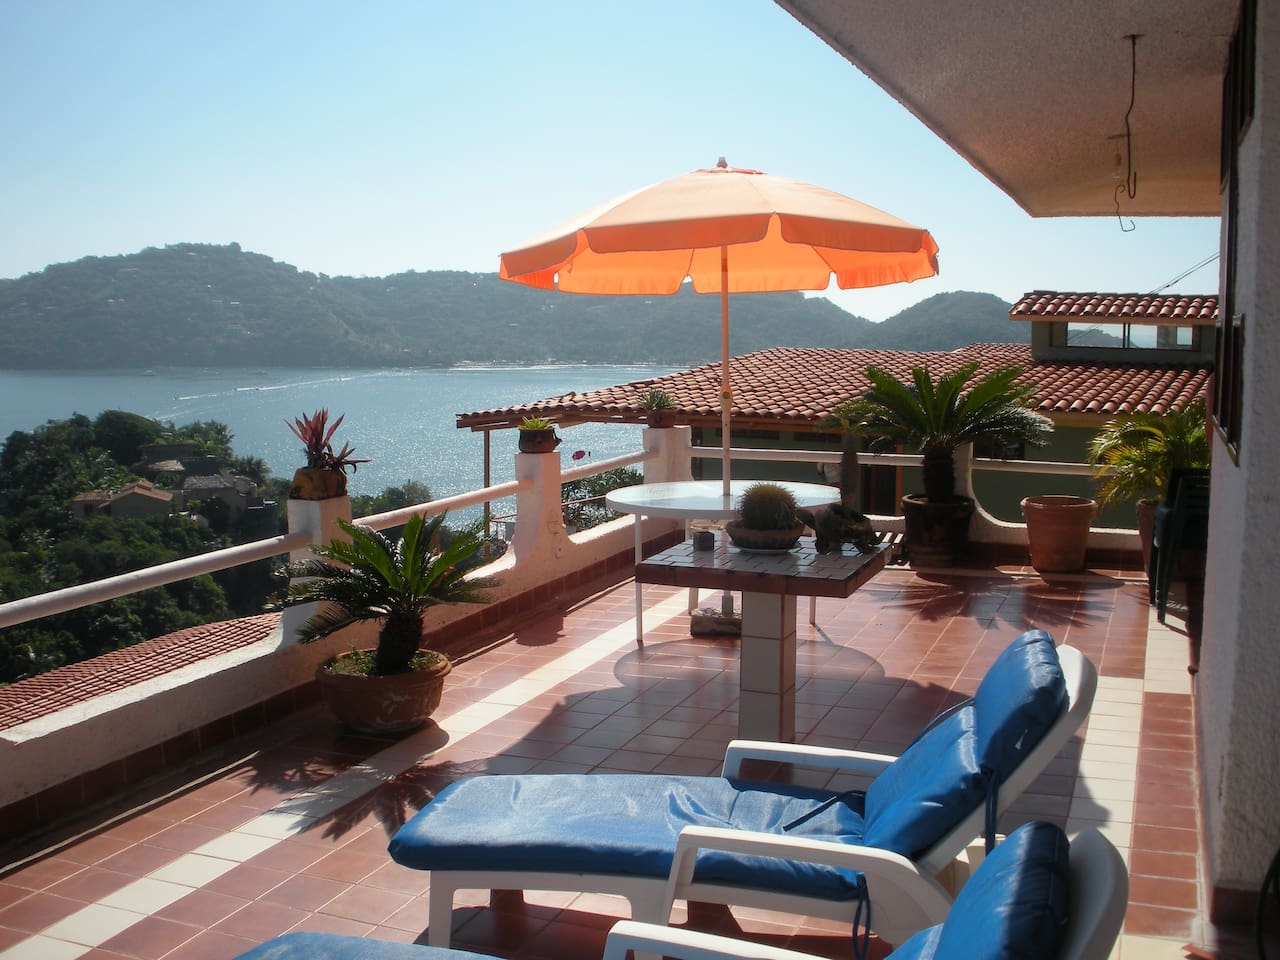 Expansive view of the Zihuatanejo Bay